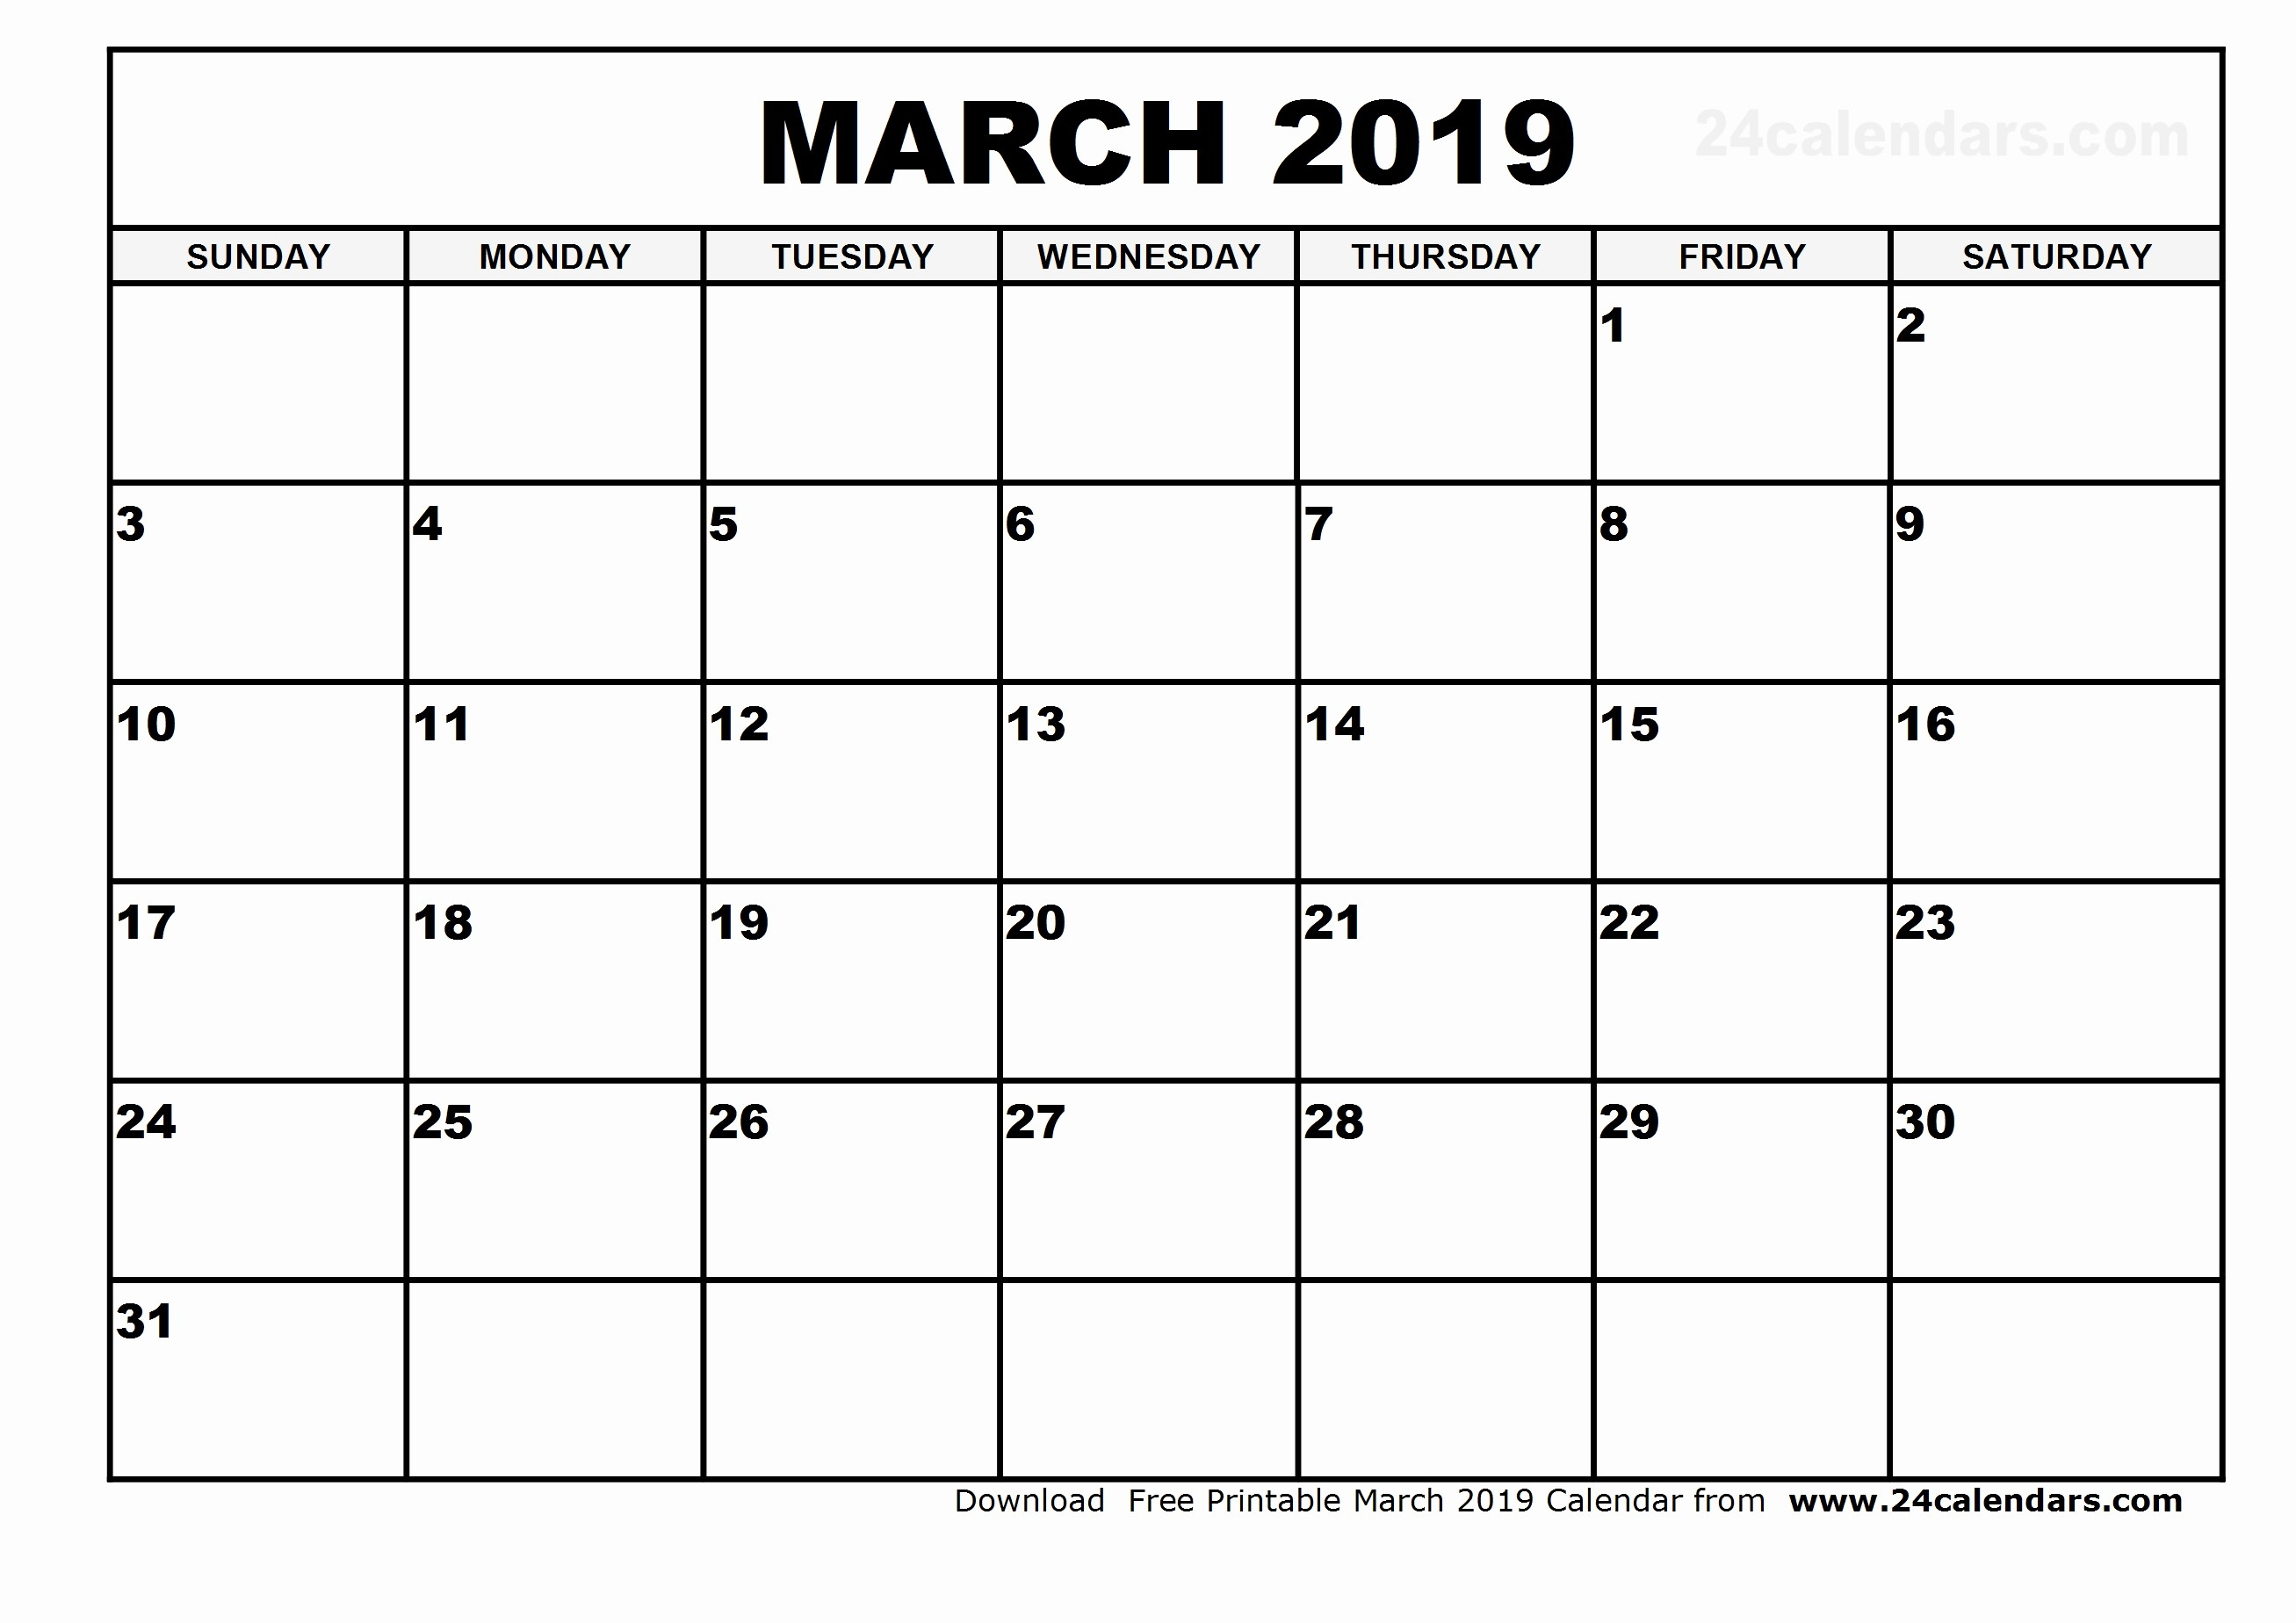 Free Printable Calendar Templates 2019 Luxury March 2019 Calendar Template